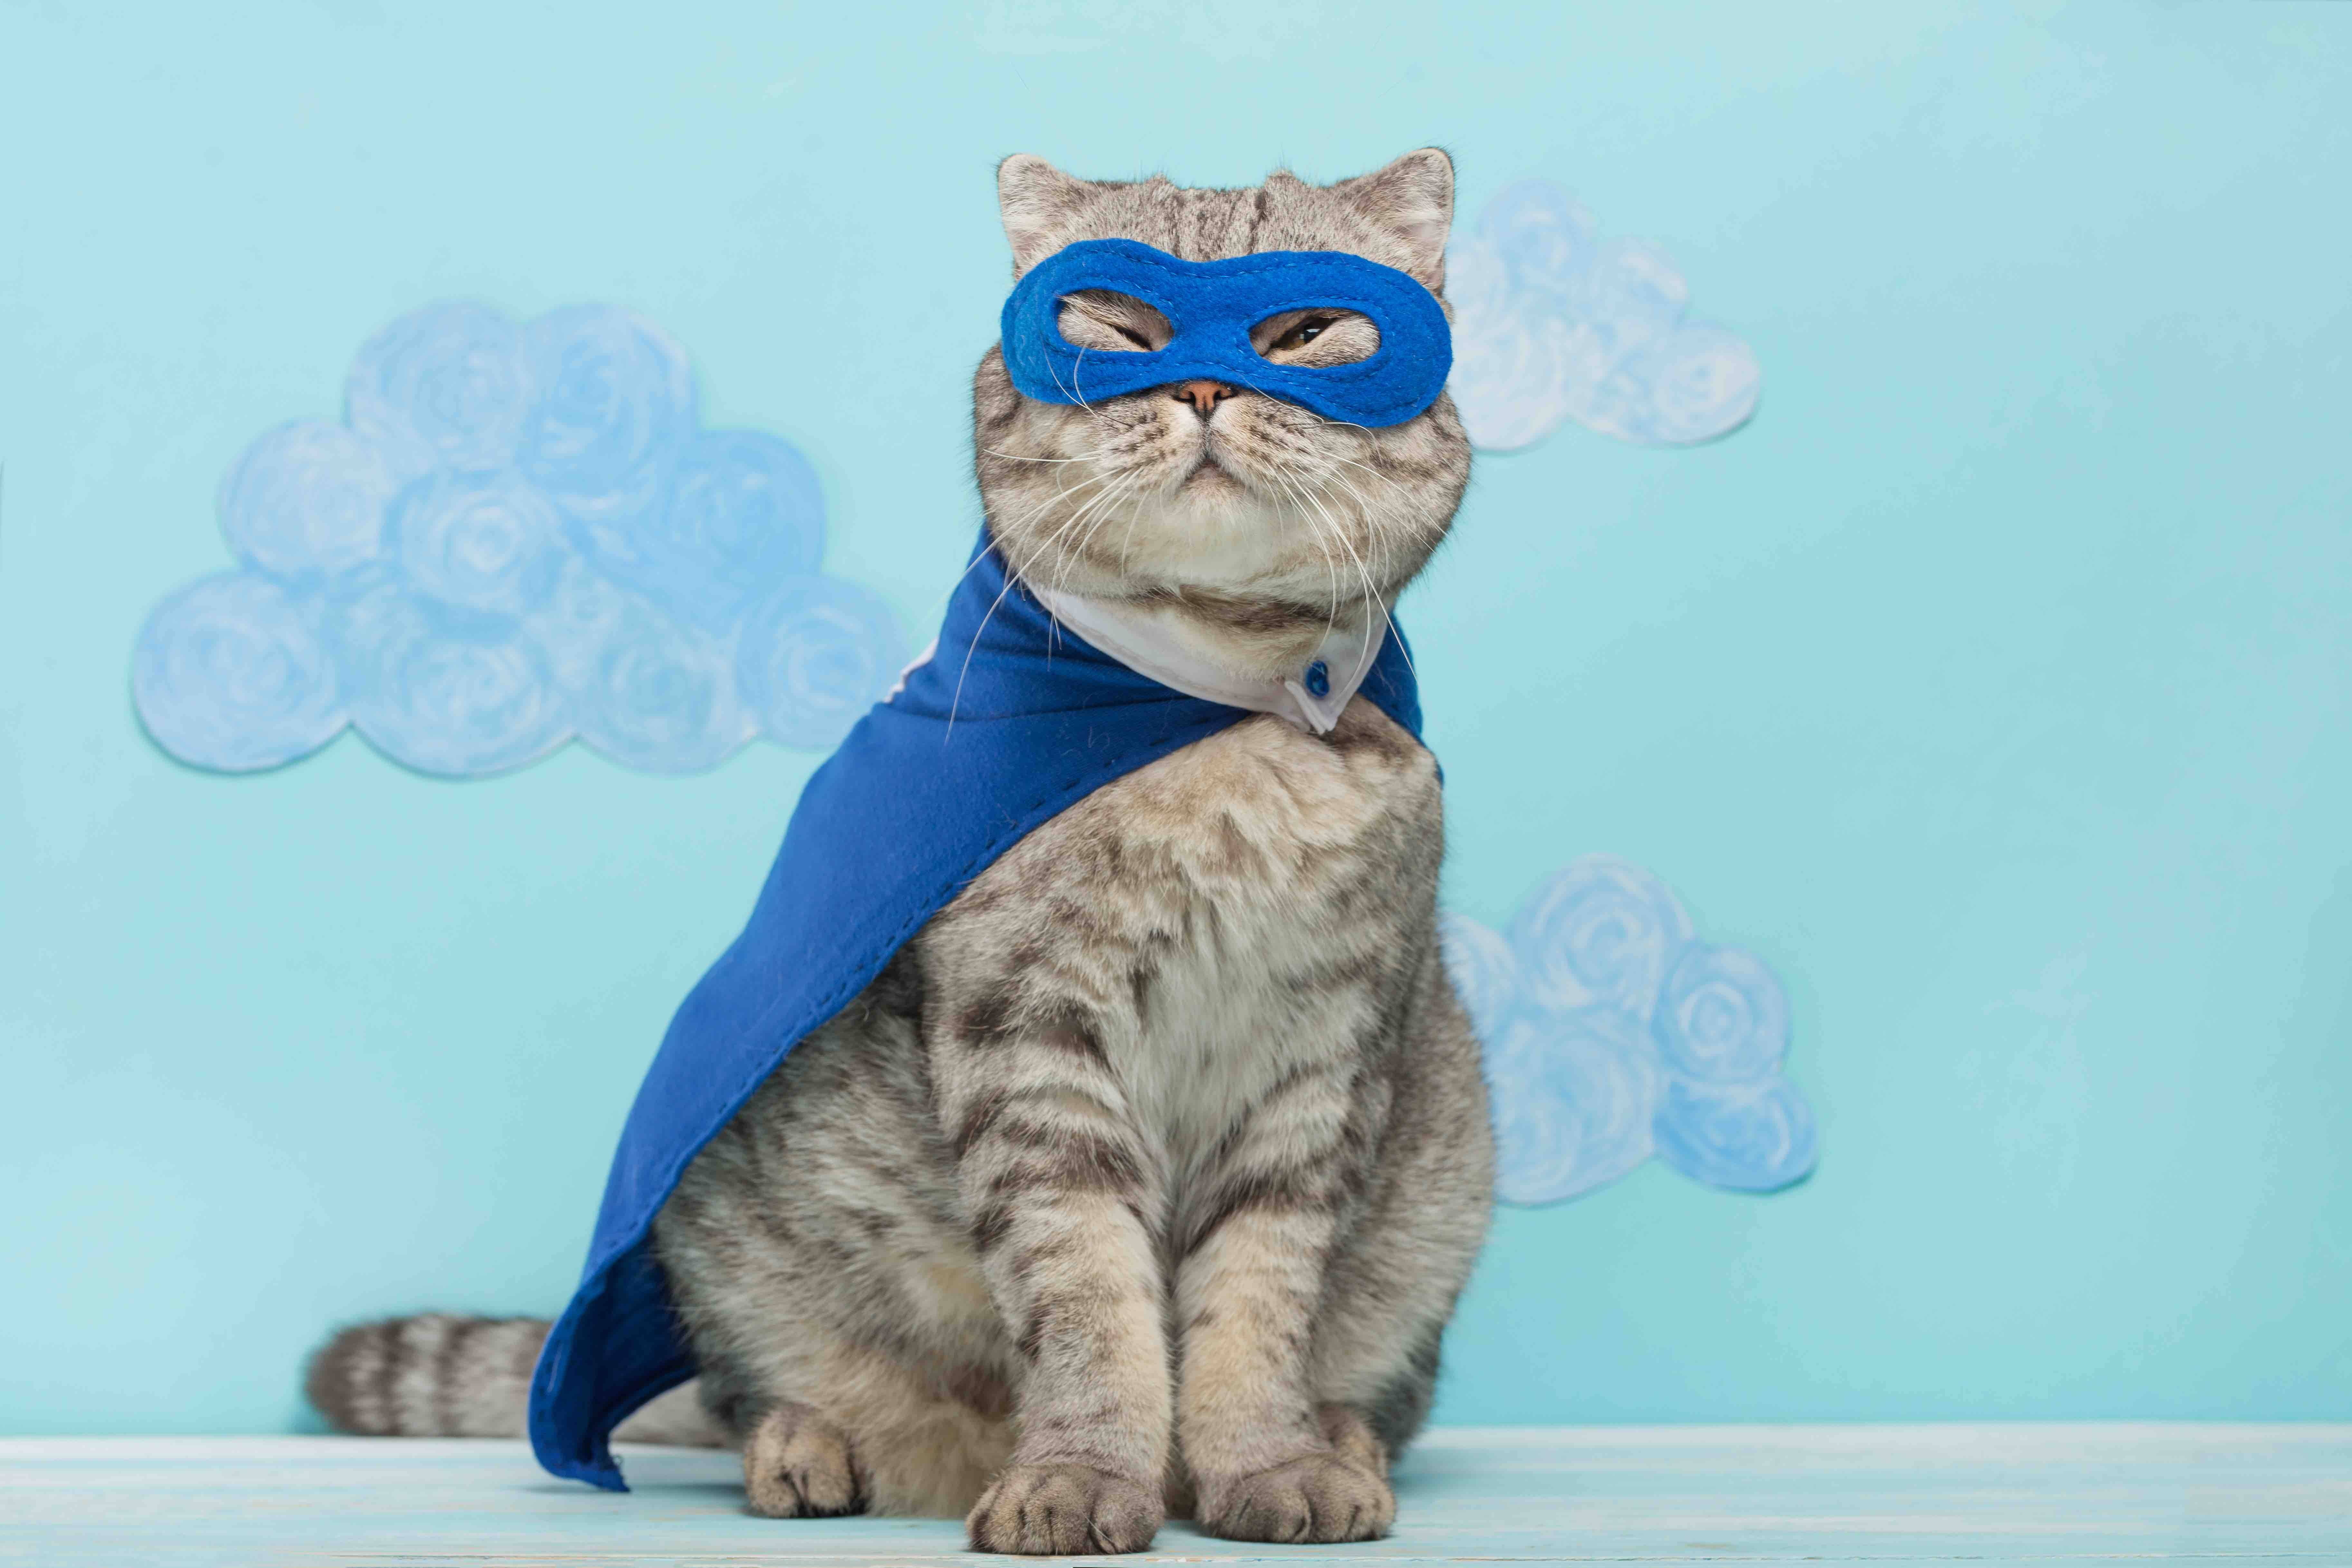 Superhero cat adorable